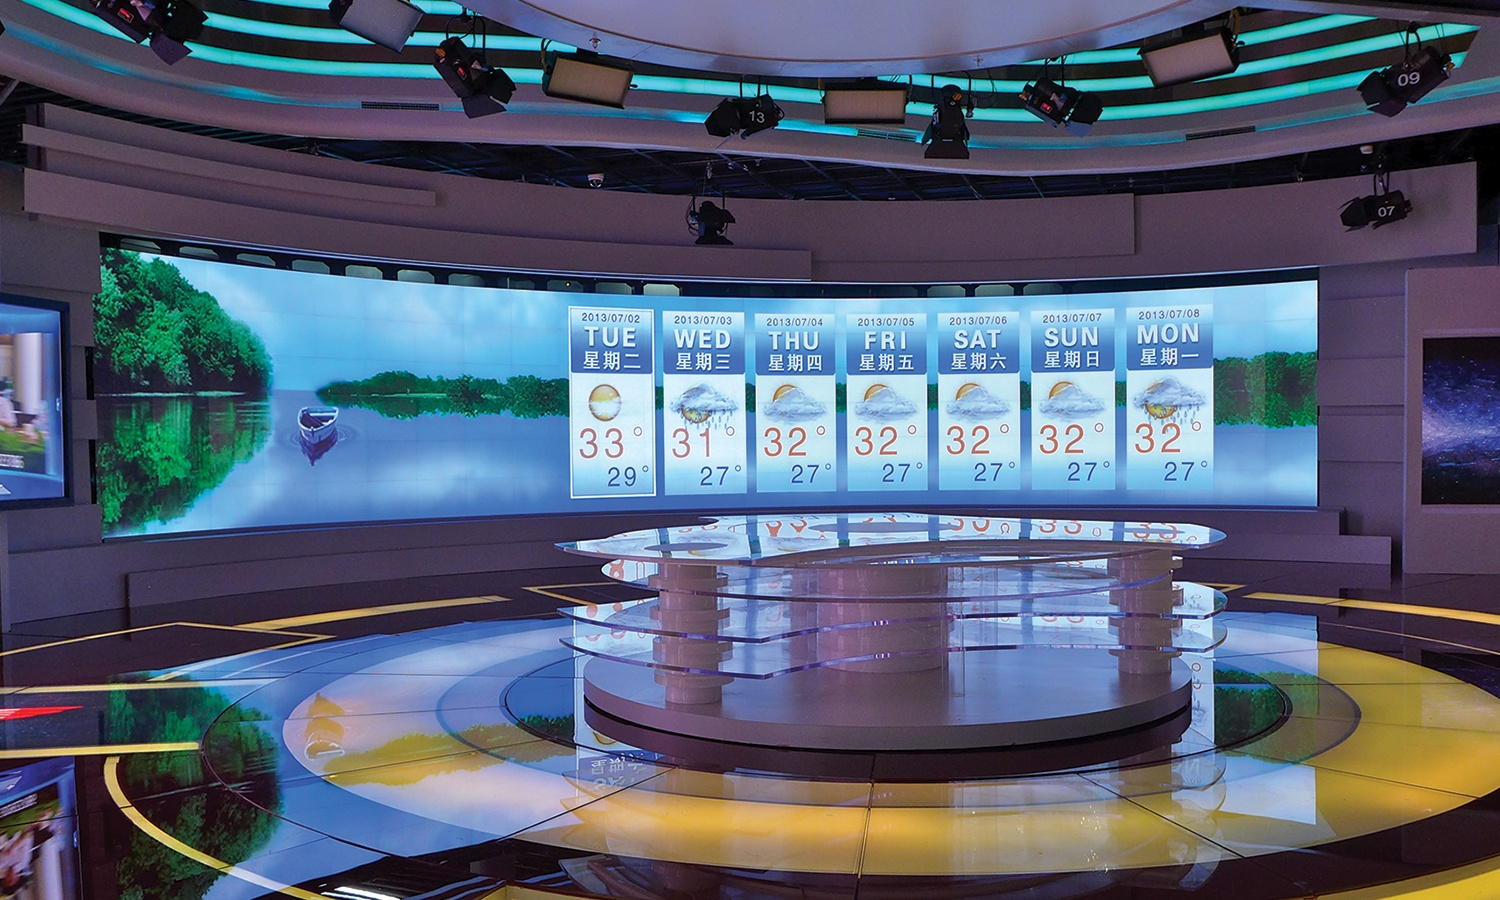 prysm-video-wall-at-beijing-tv.jpg